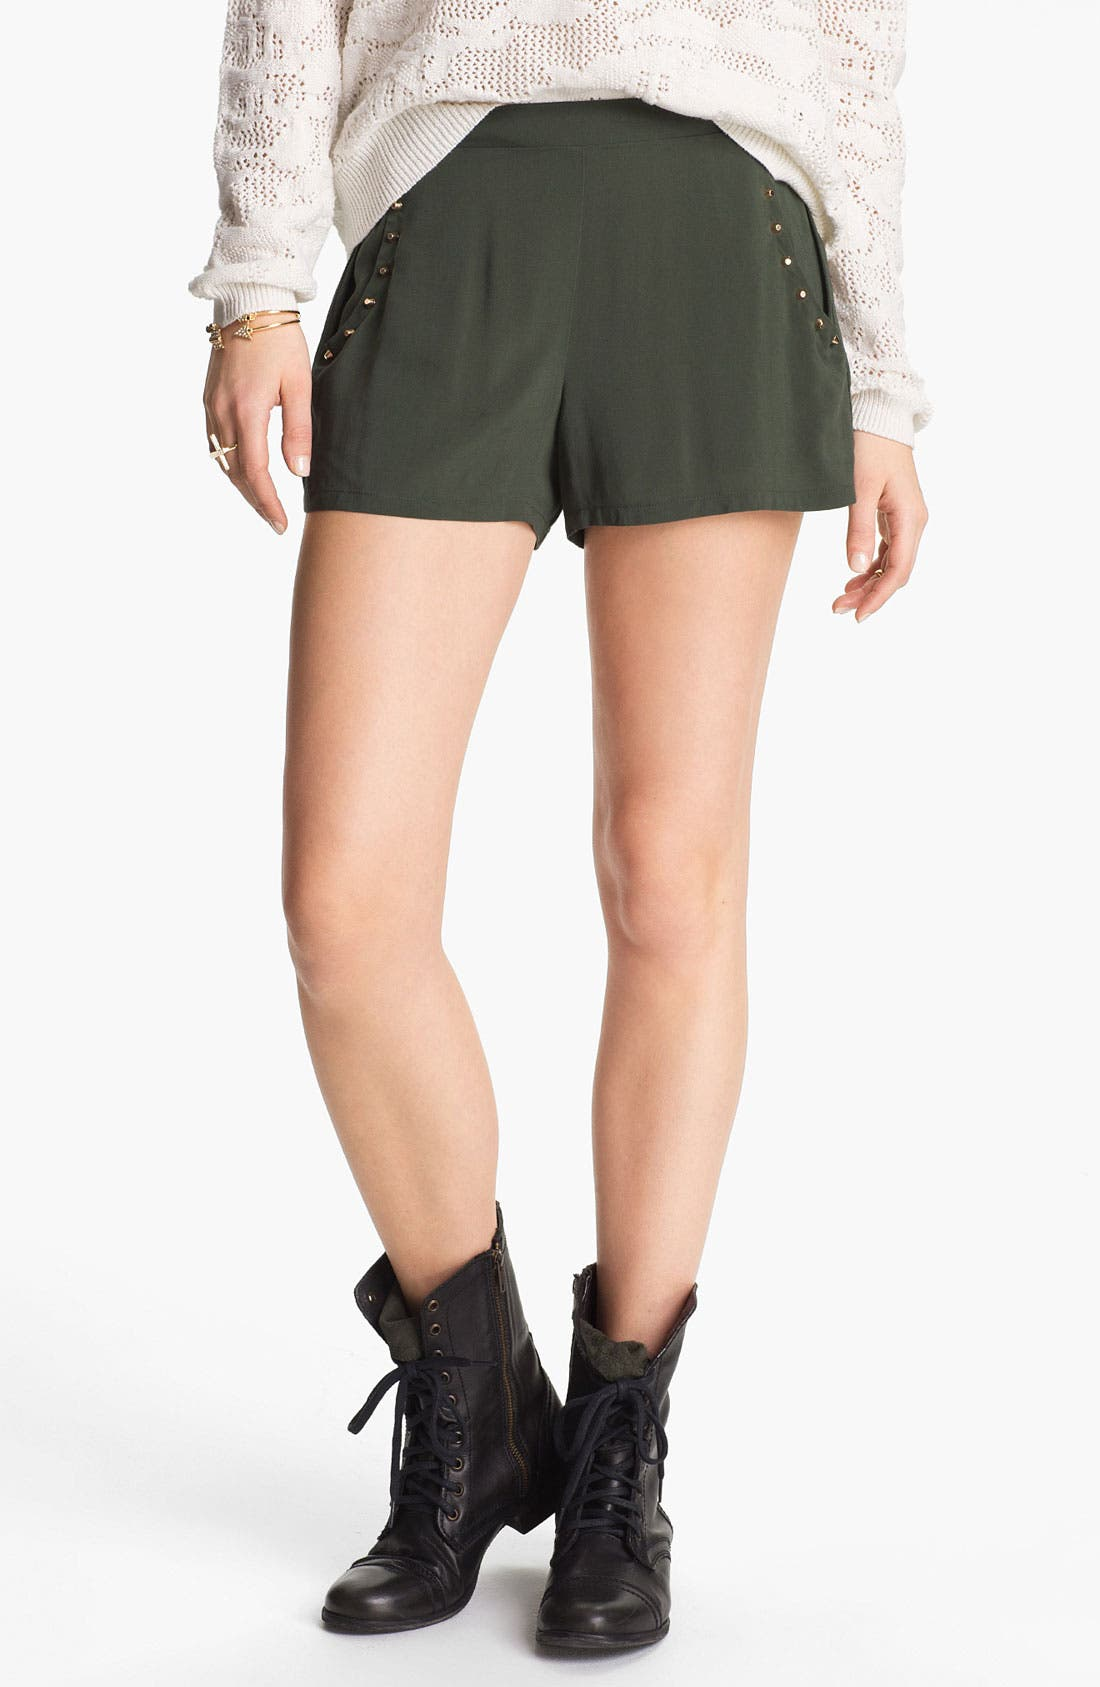 Alternate Image 1 Selected - h.i.p. Studded High Waist Shorts (Juniors)